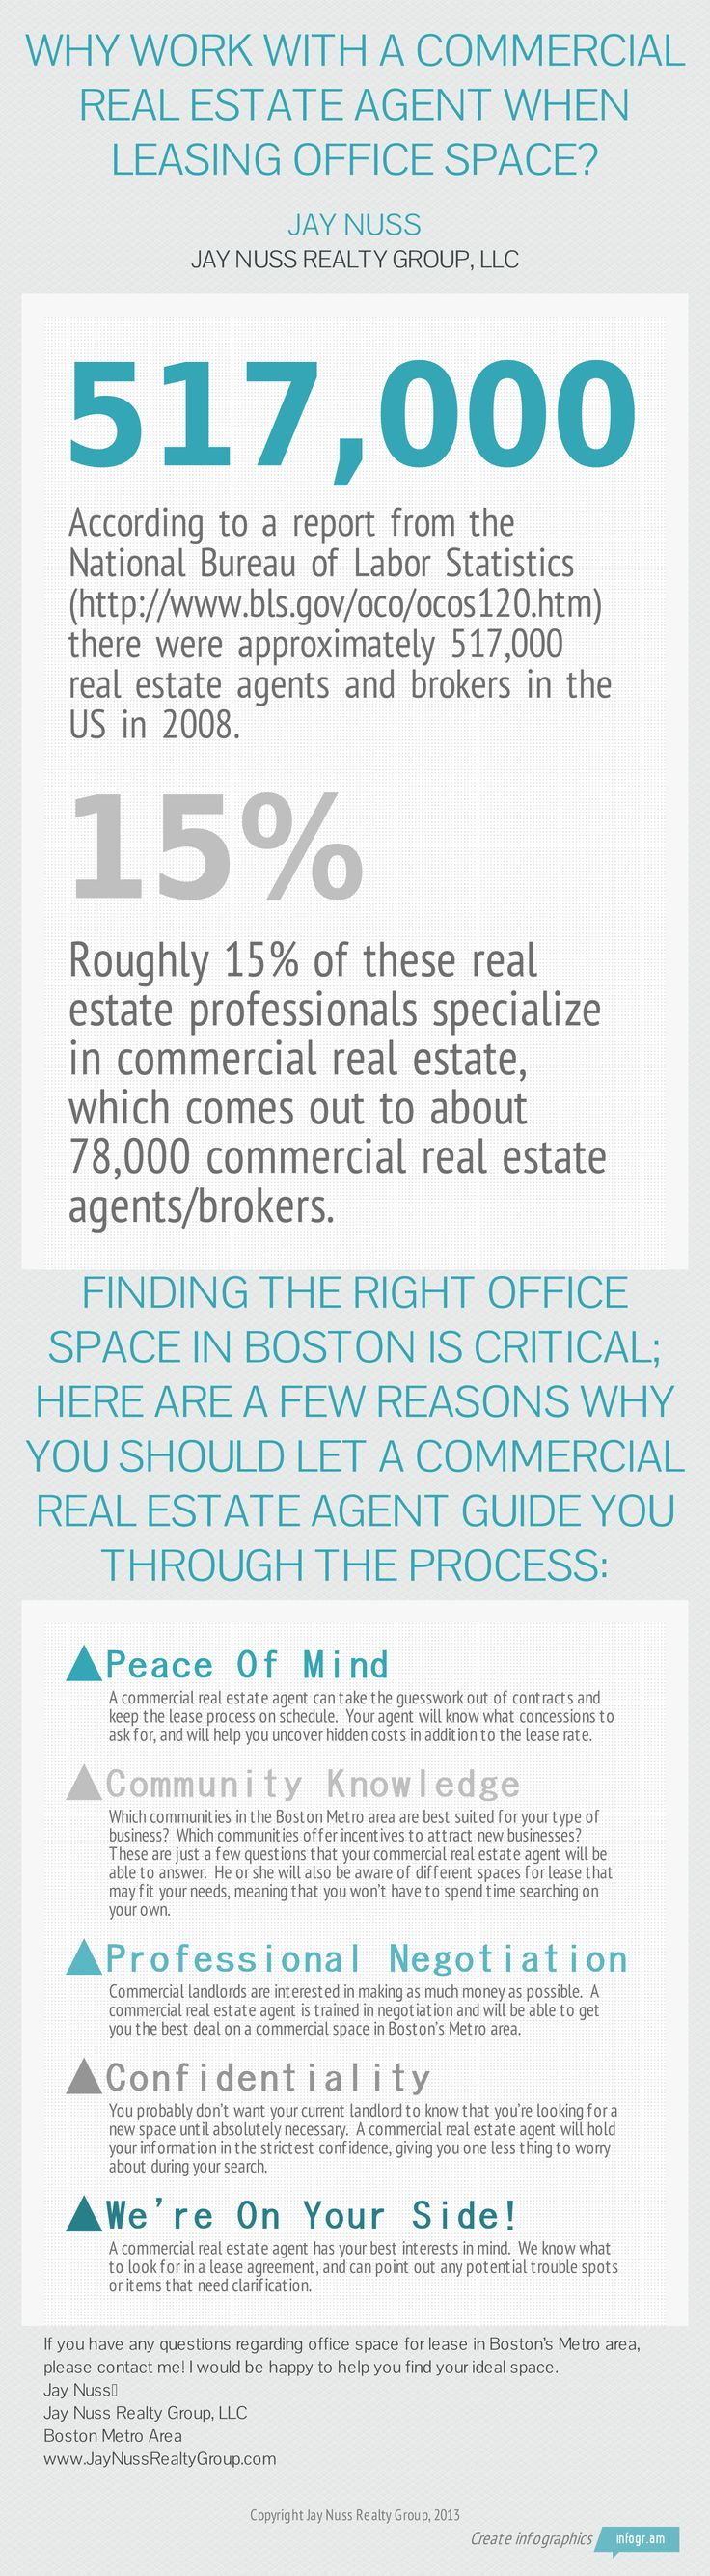 Best Professional Portraits Images On   Real Estate